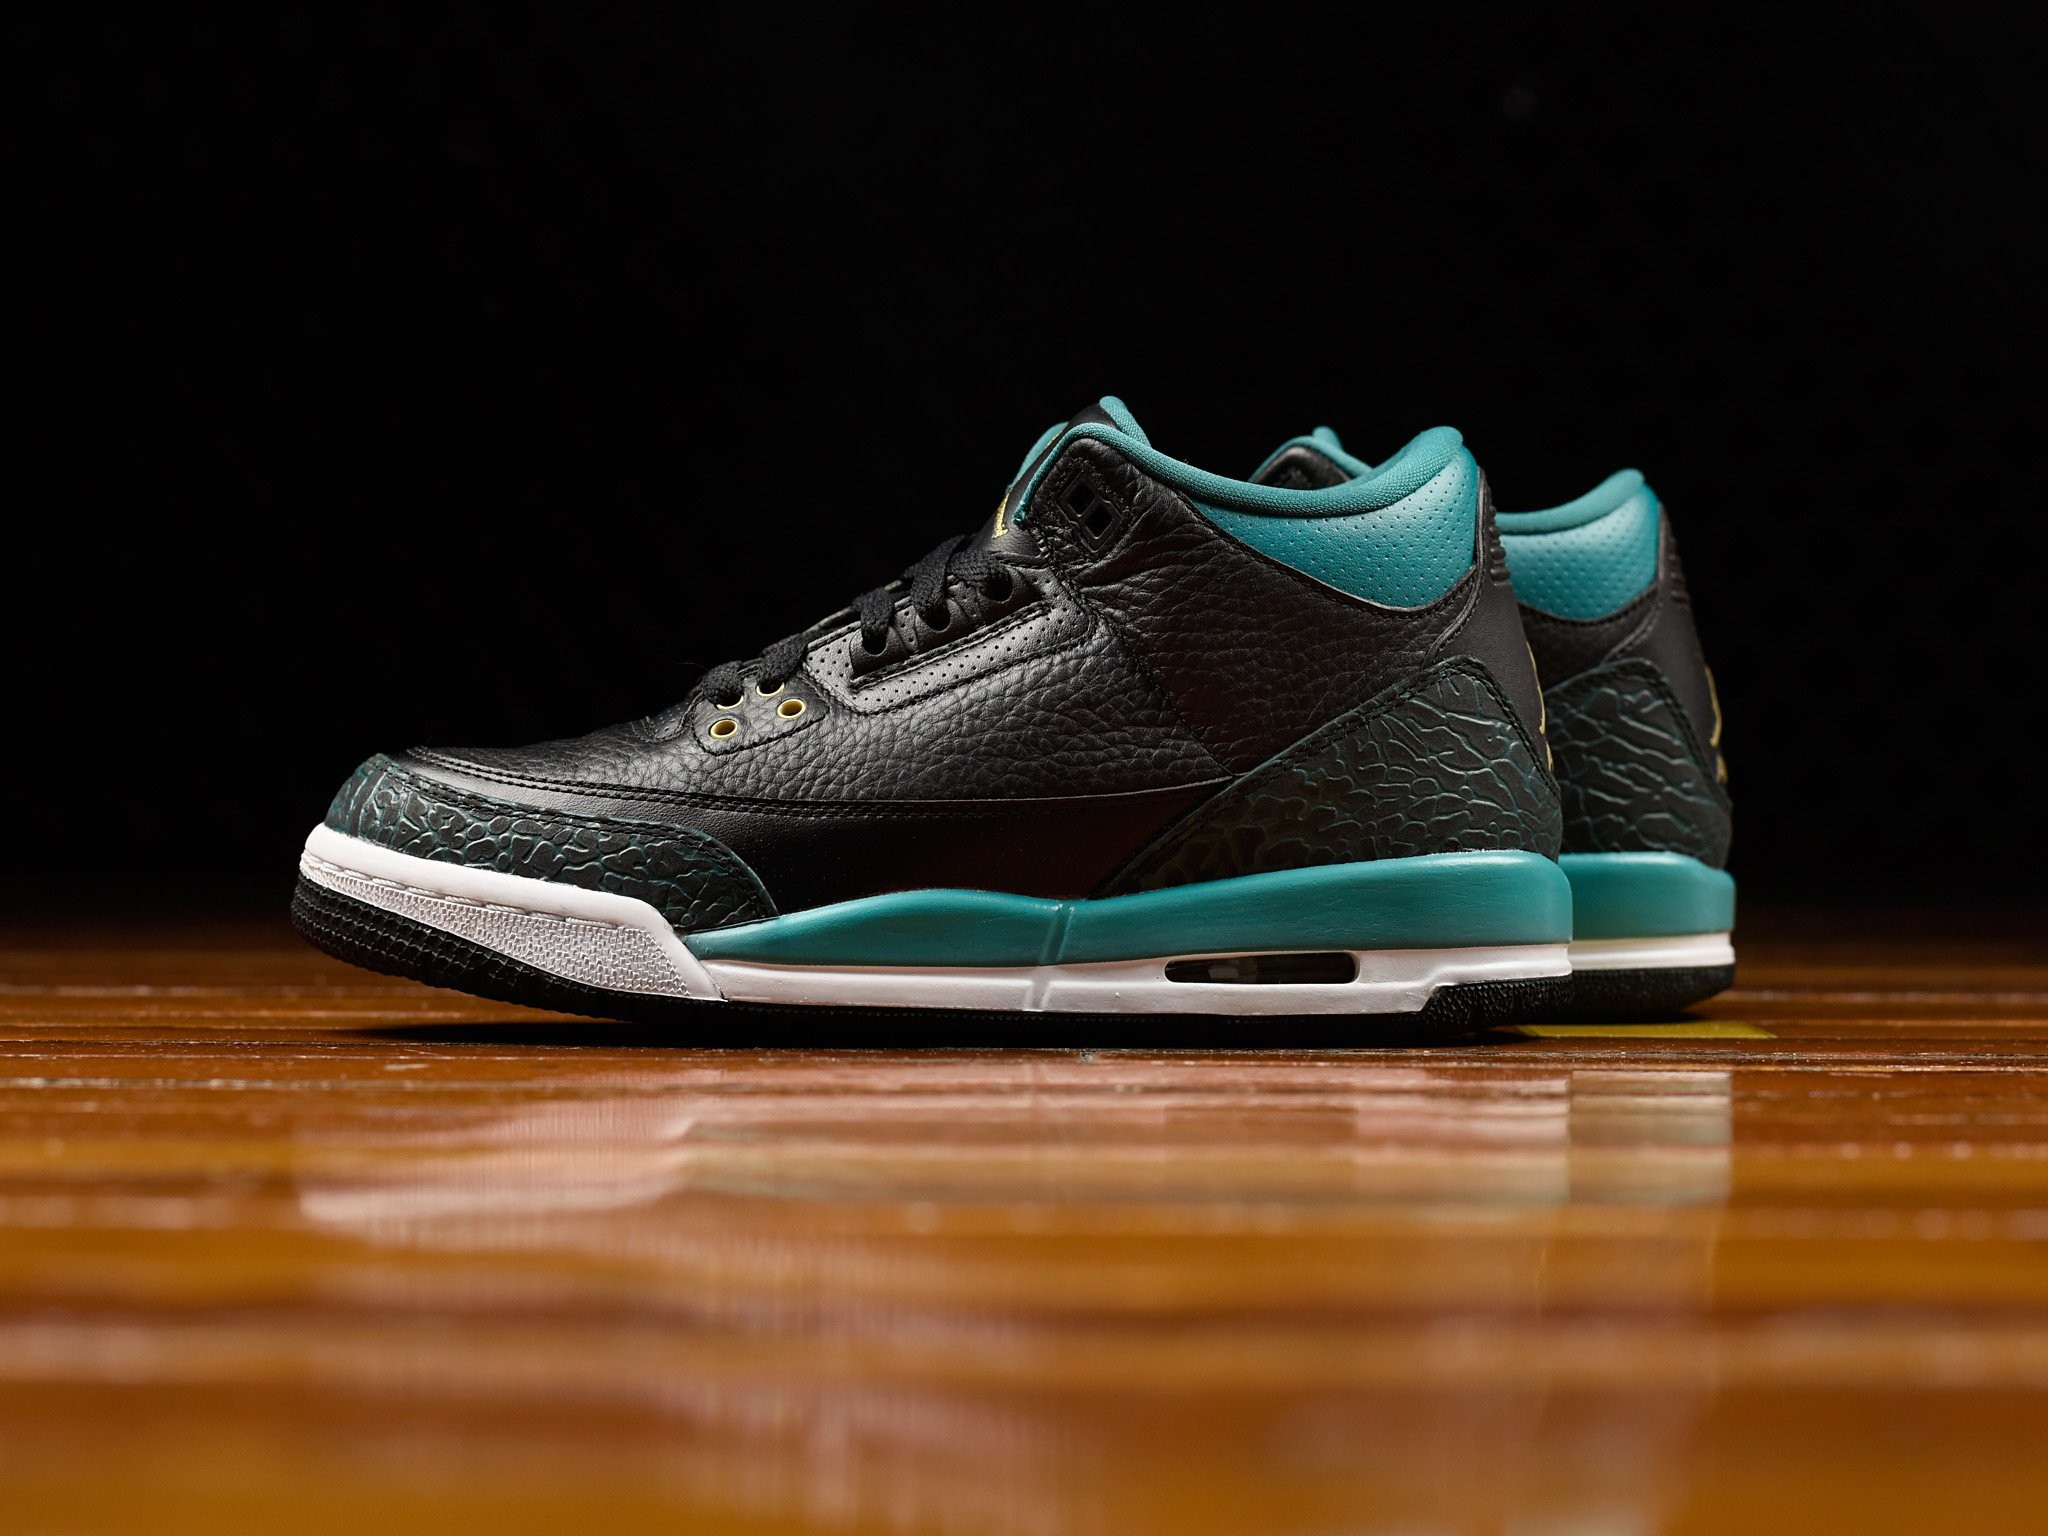 buy online b7565 f2e3b 2048x1536 The Air Jordan 3 GS Rio Teal Arrives This Weekend. Download ·  2048x1536